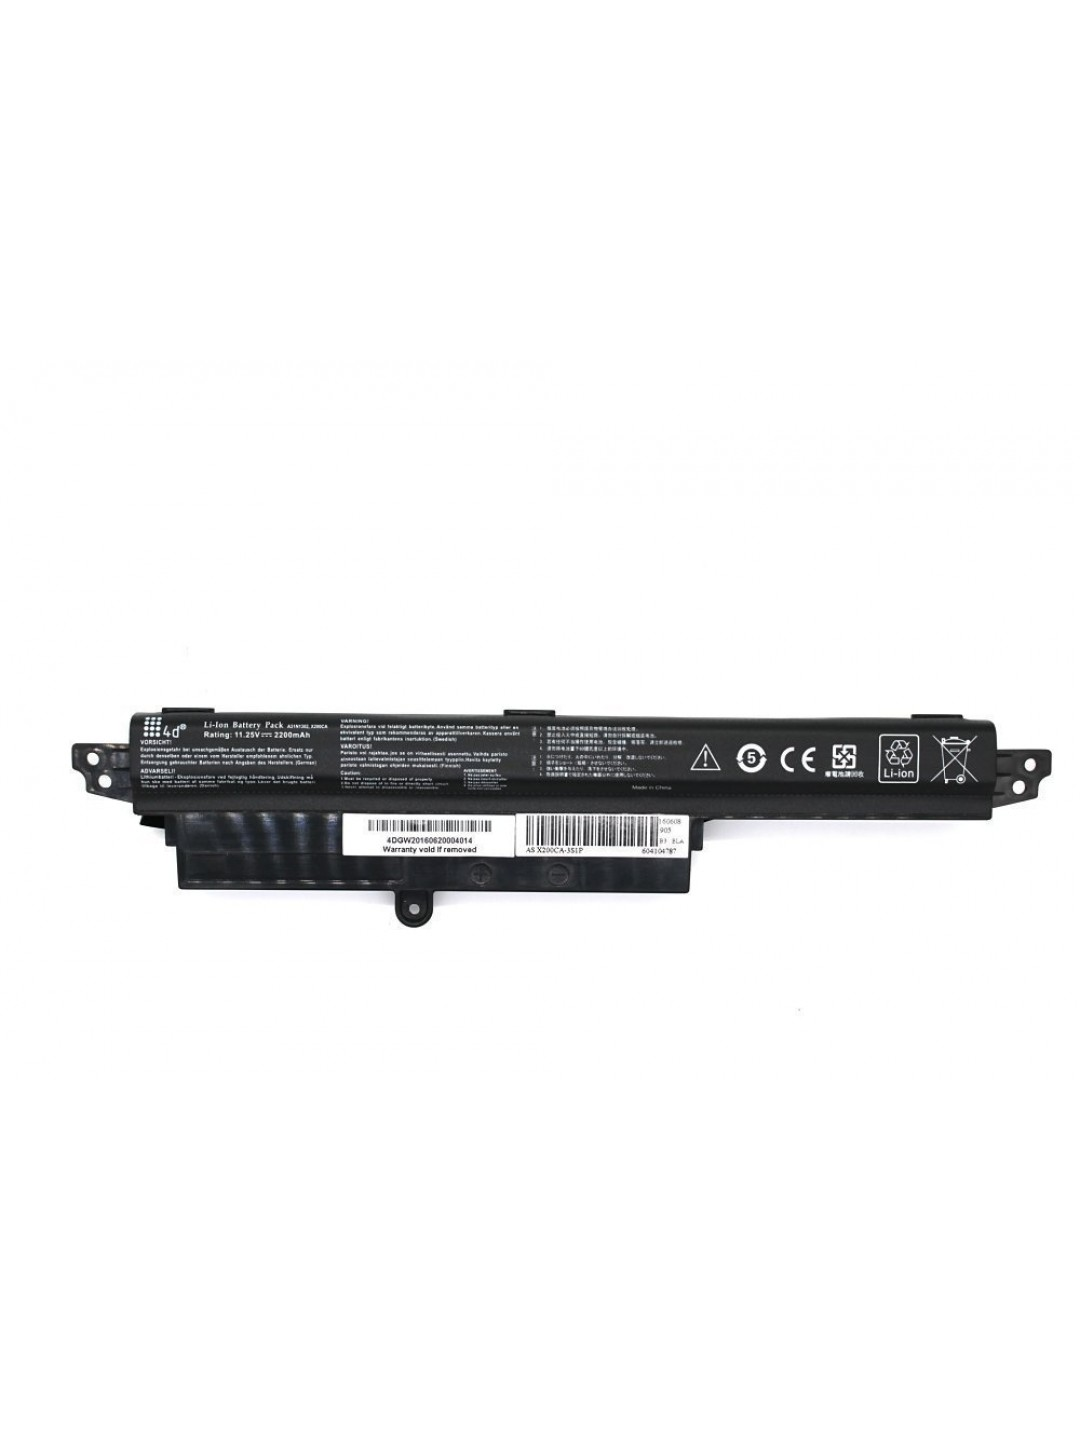 BATTERY ASUS X200 M